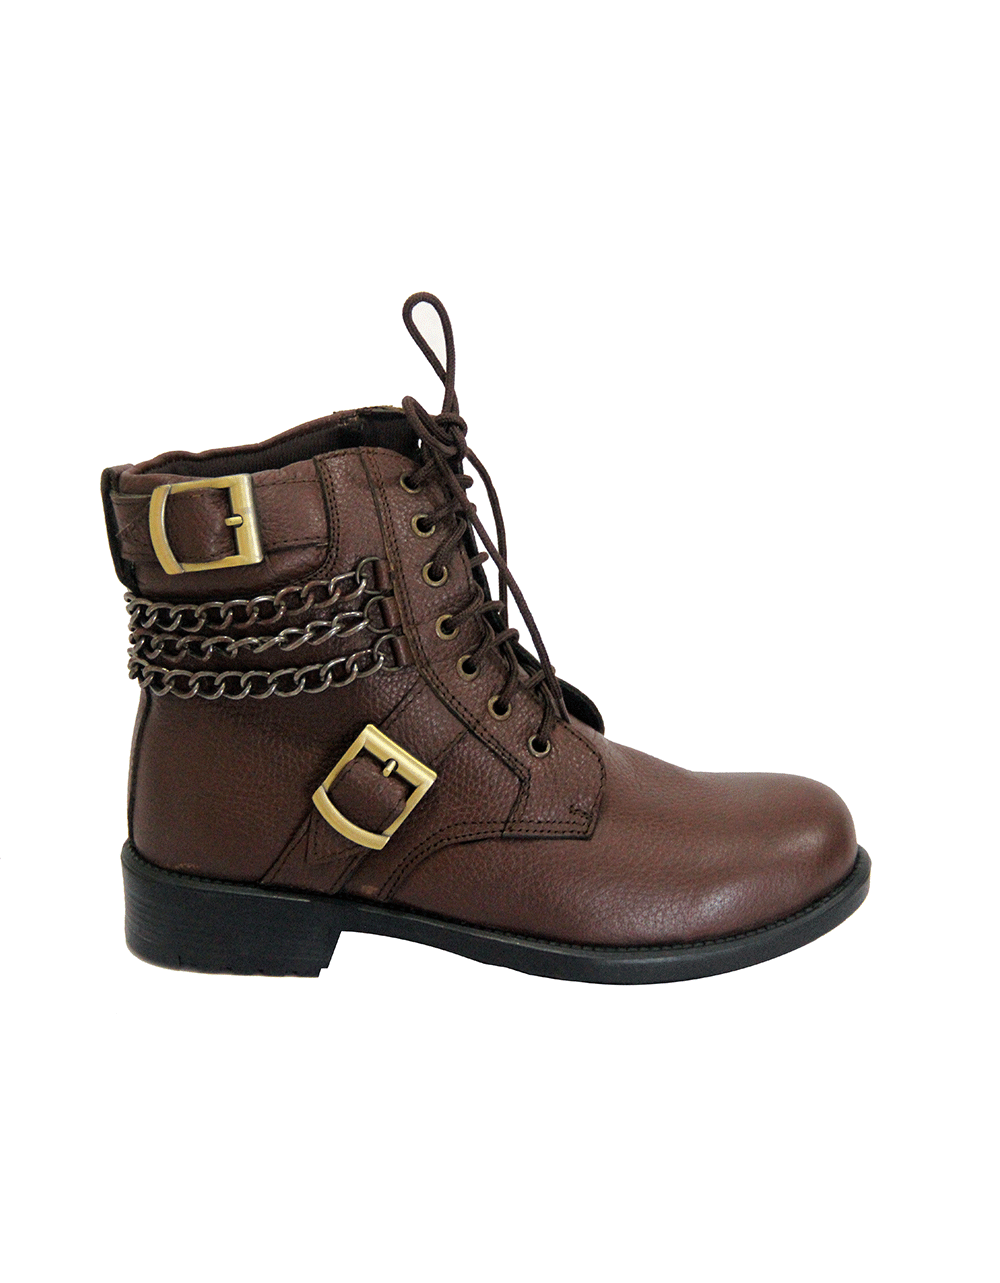 stylish winter boots for mens